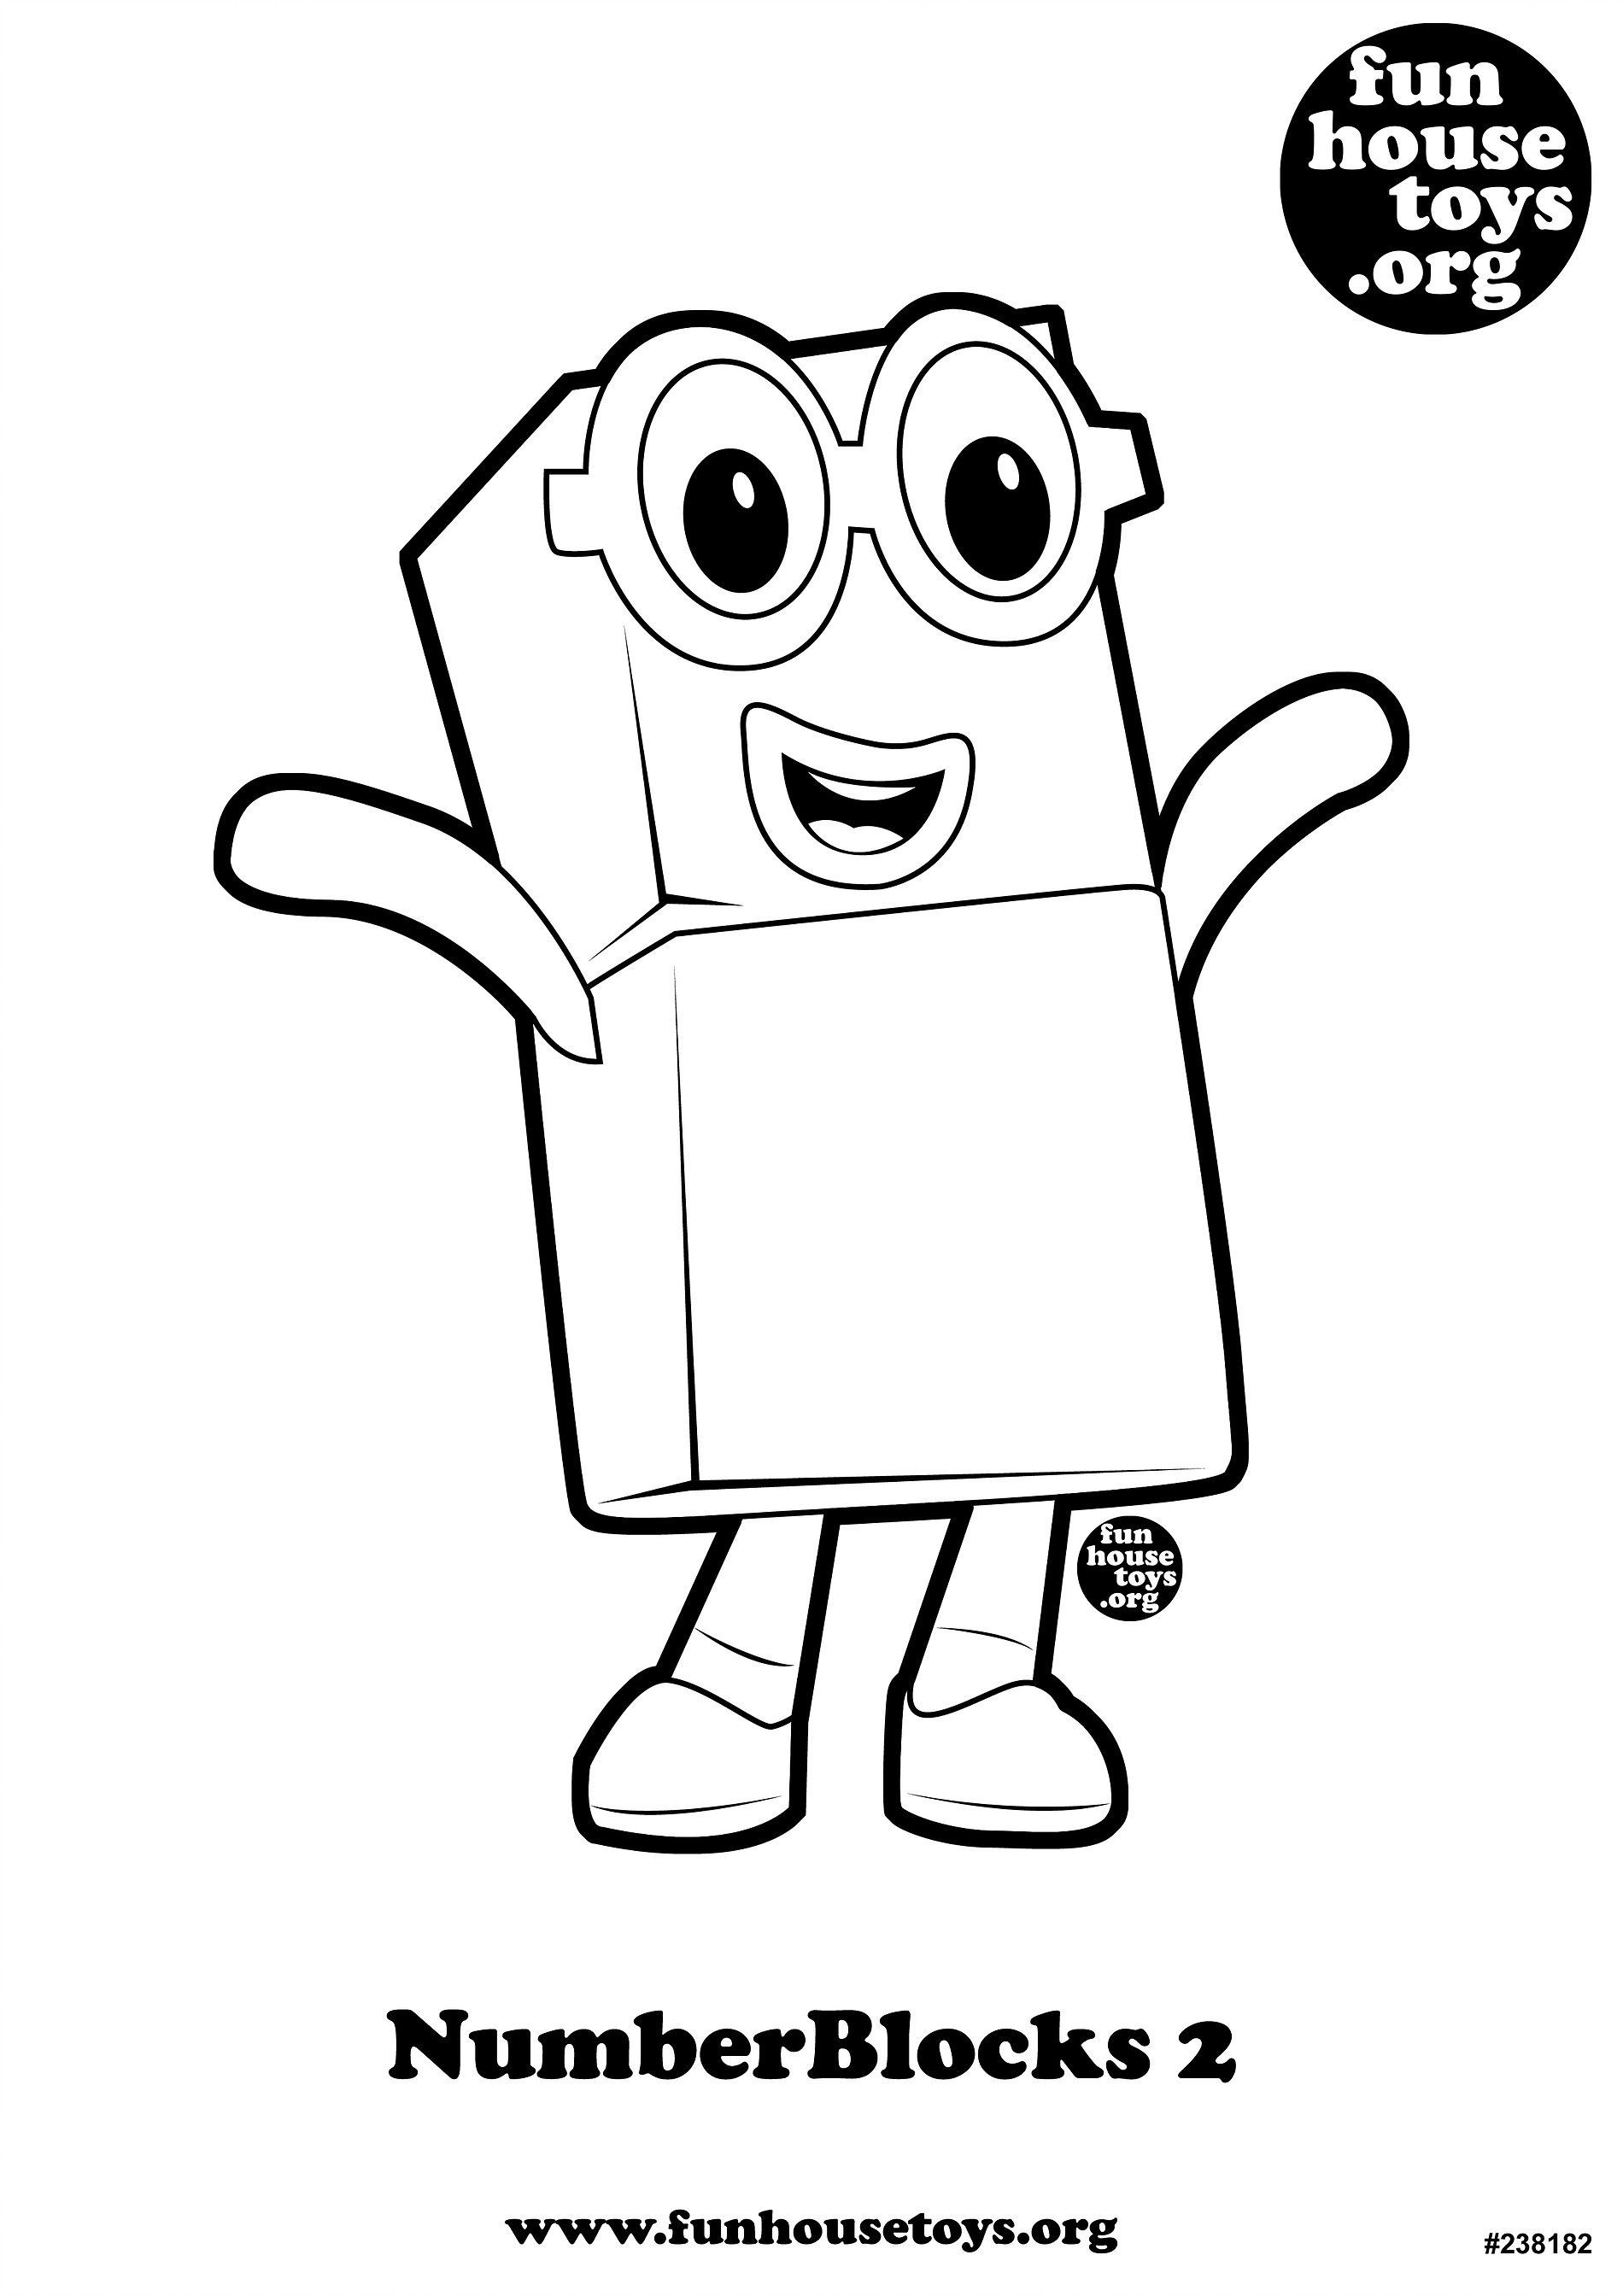 Image By Joanna De La Cruz On Numberblocks Coloring Pages